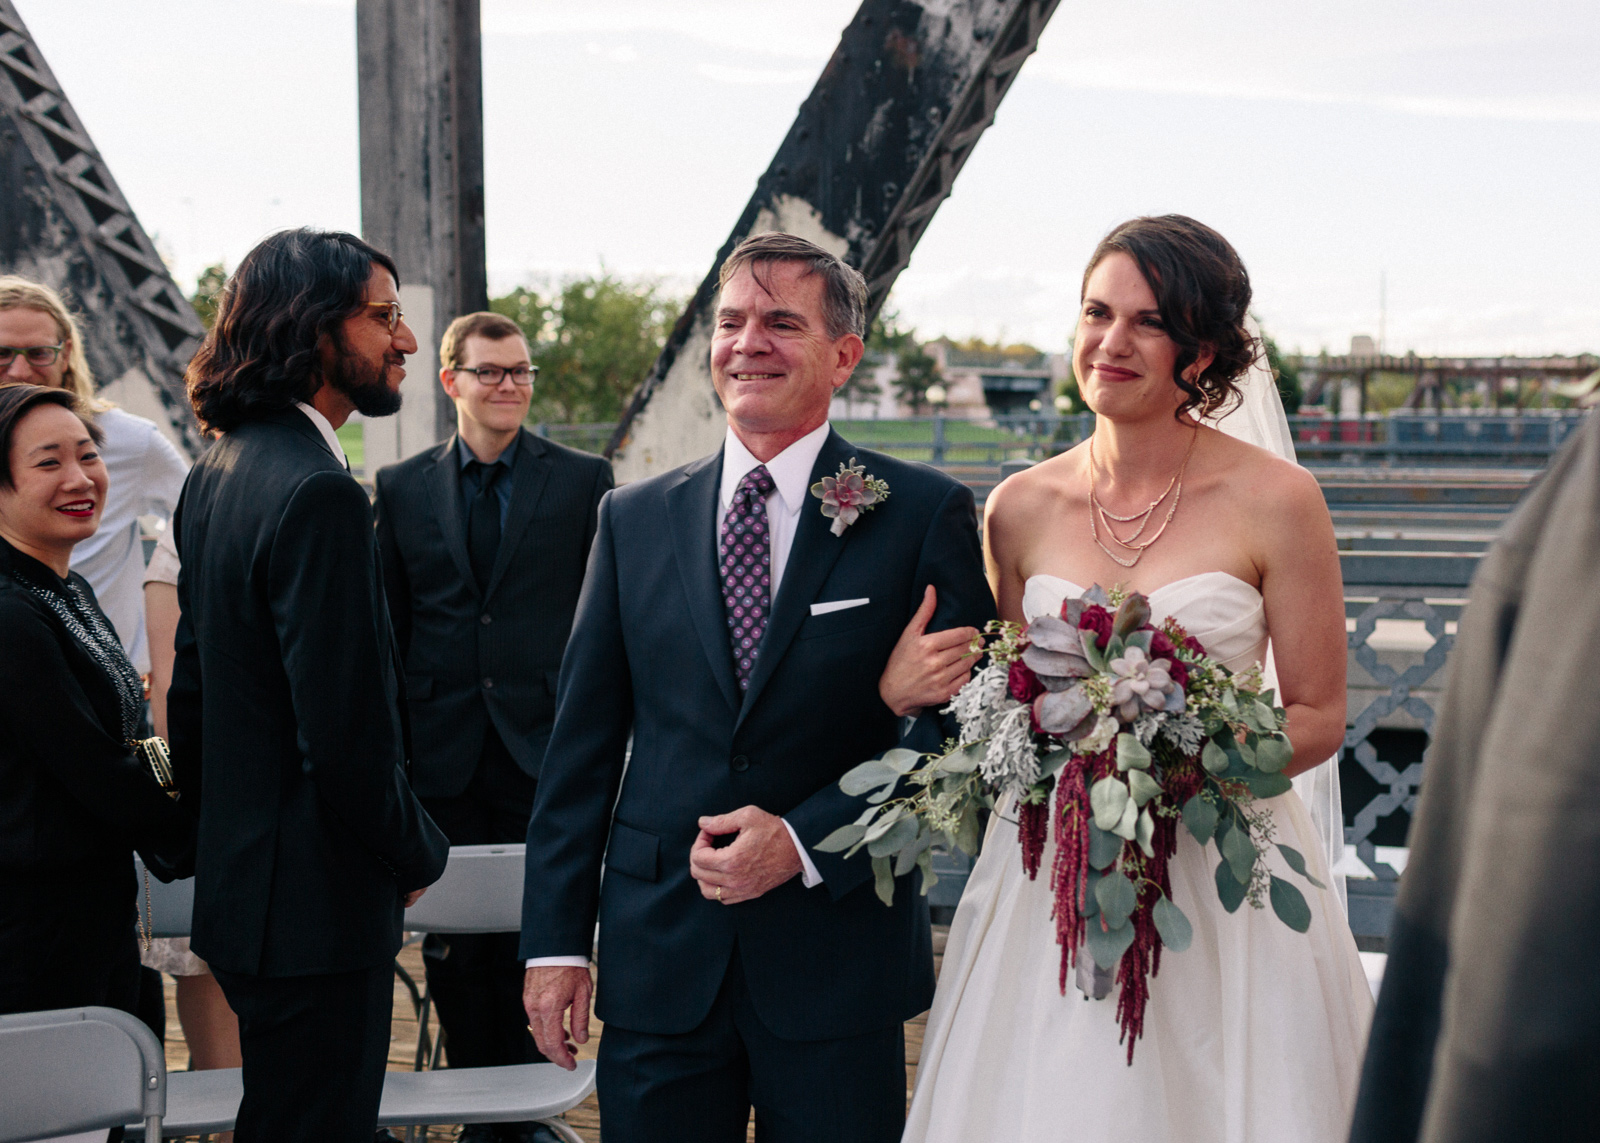 Coo-Hills-Wedding-Photographer-Downtown-Denver-Rebecc-and-Aaron-28.jpg